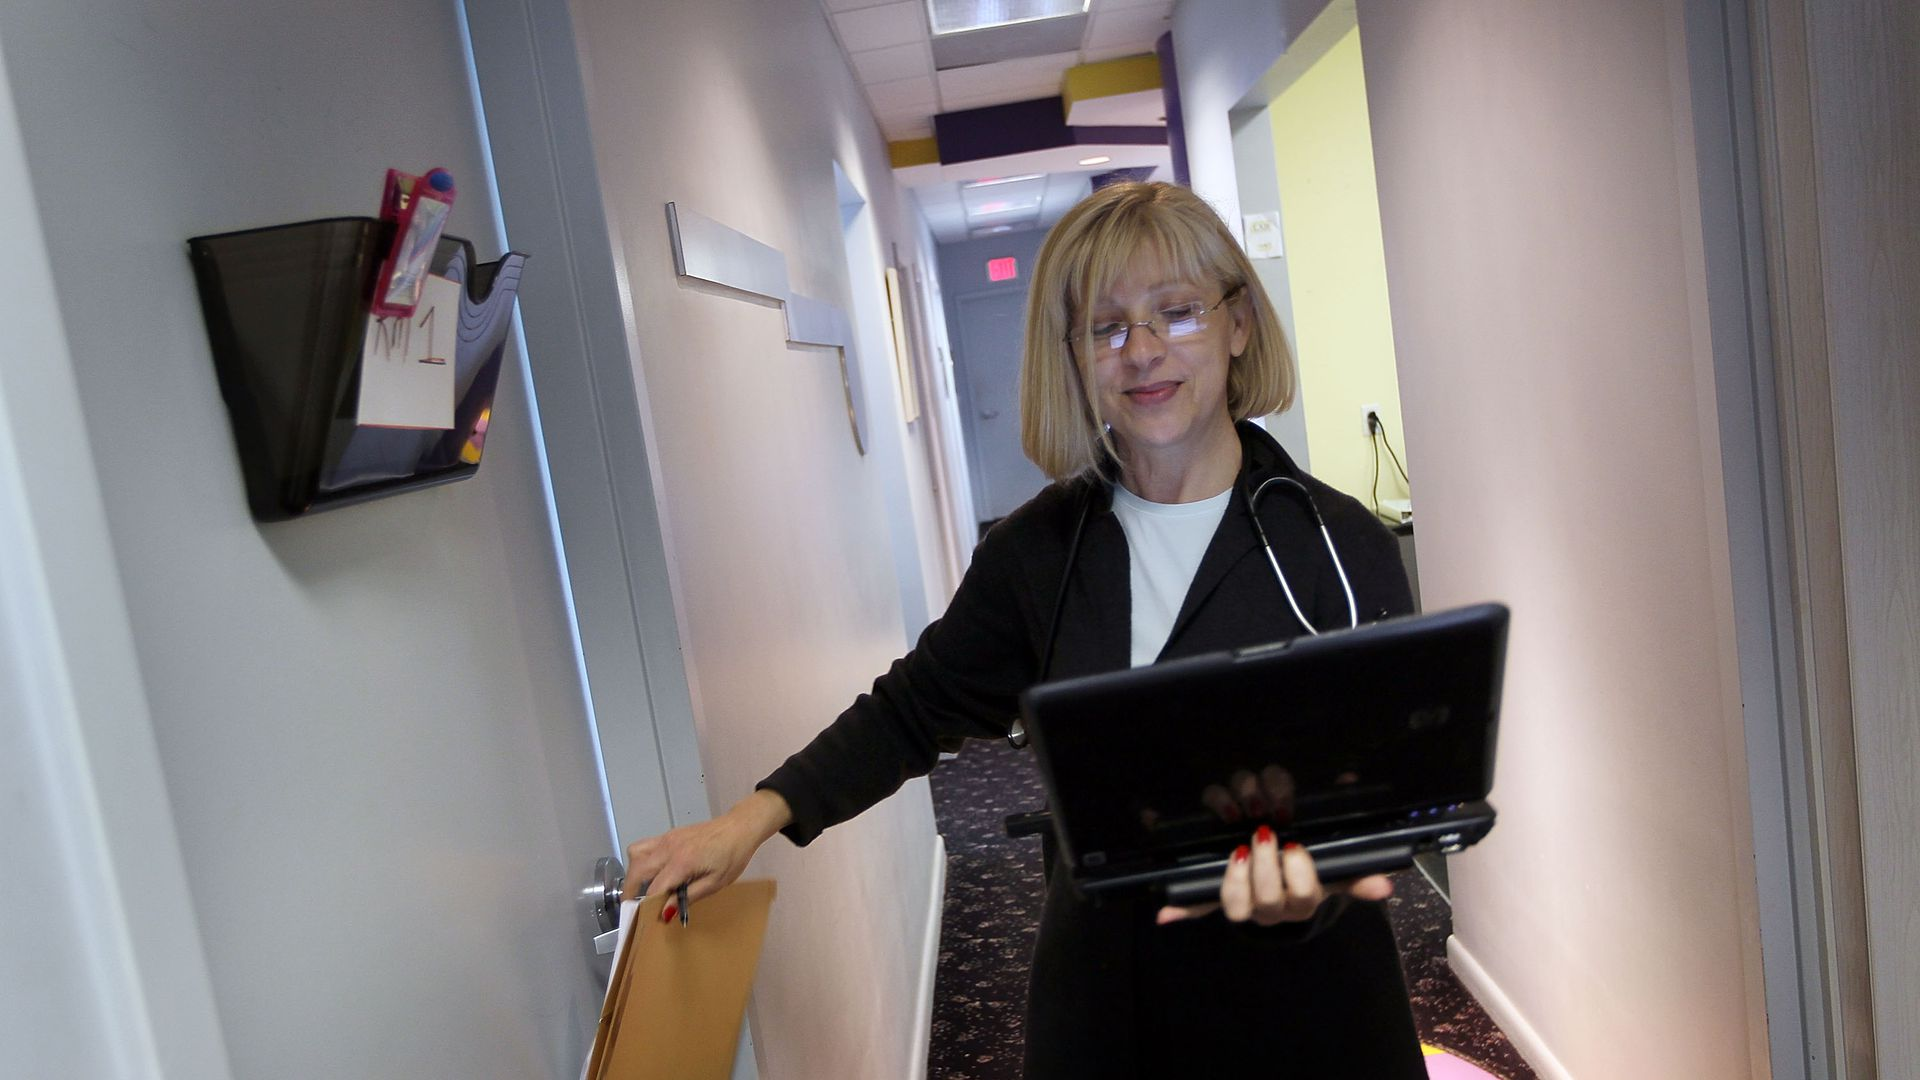 A doctor holds a laptop before entering a patient room.